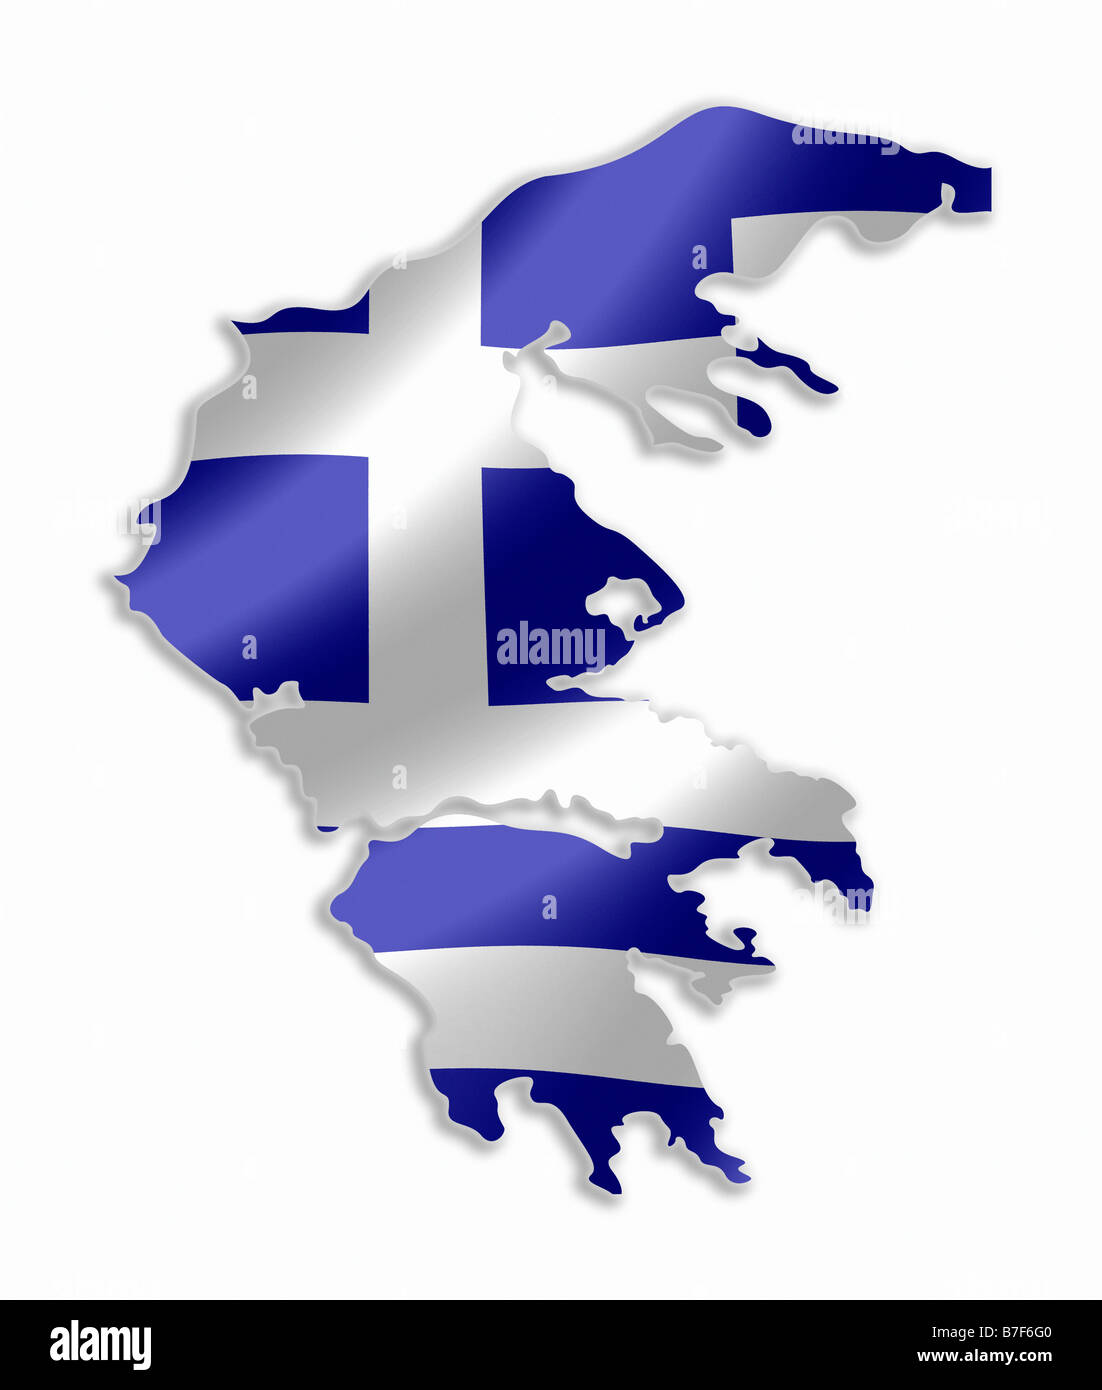 Greece map stock photos greece map stock images alamy greece greek country map outline with national flag inside stock image biocorpaavc Image collections